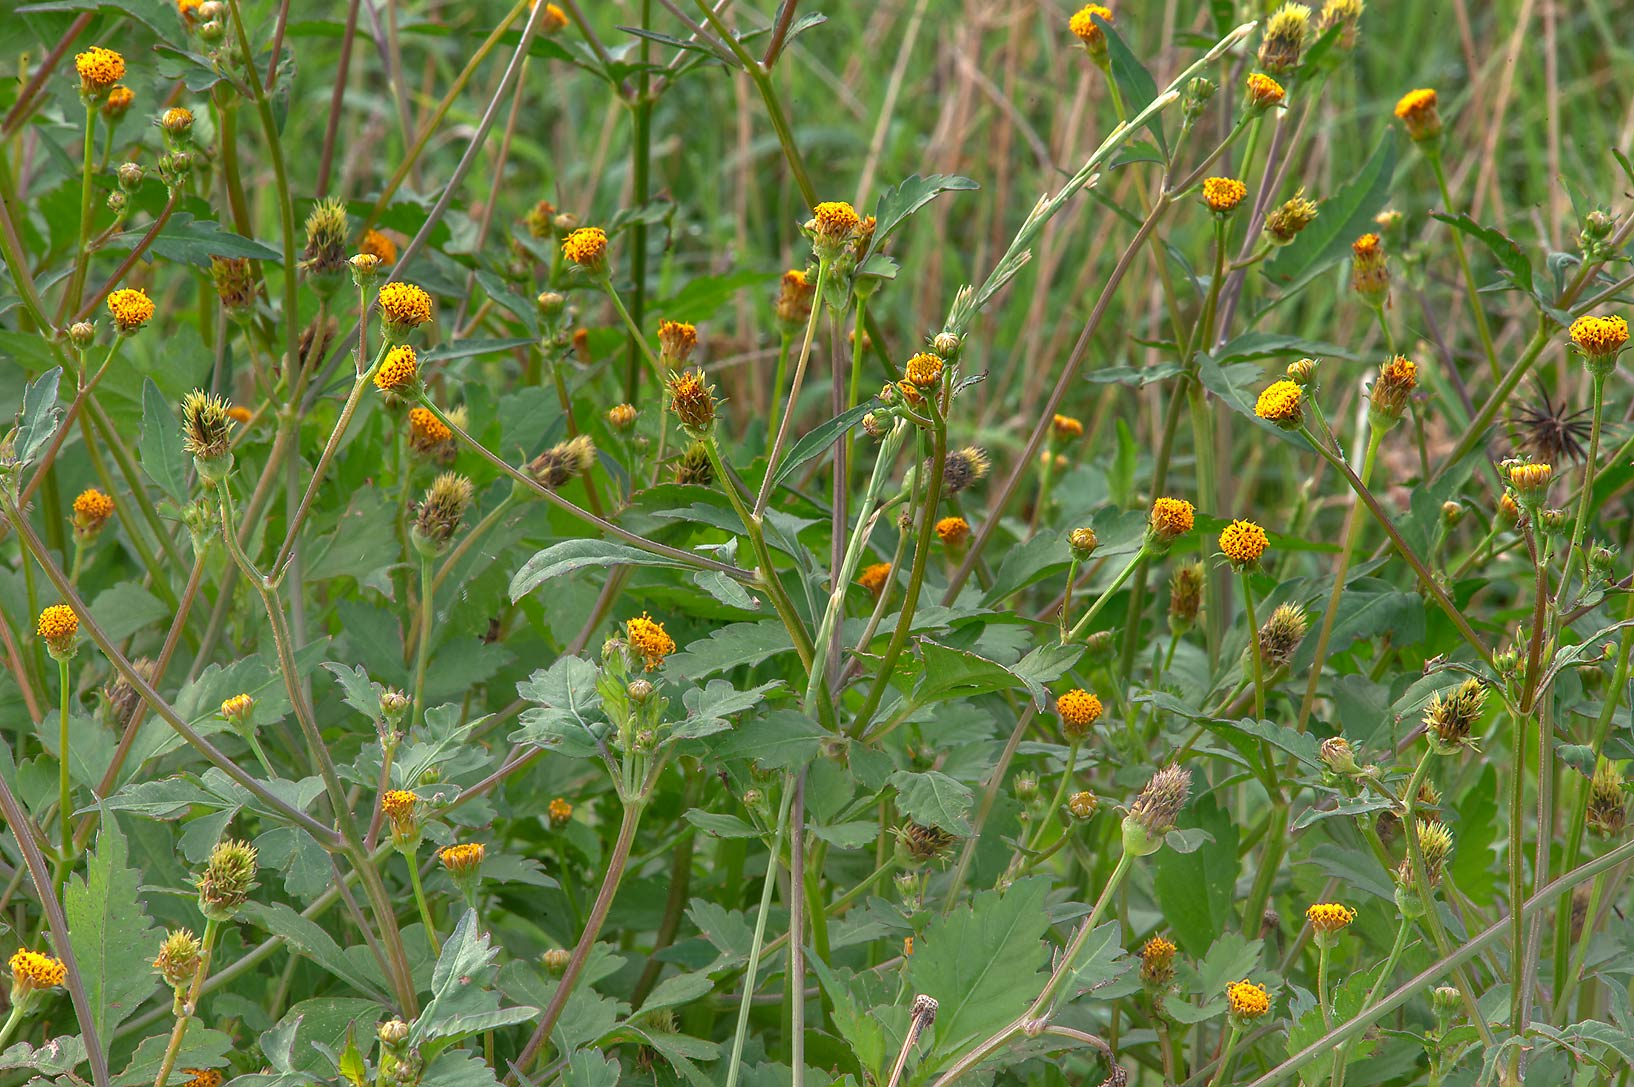 Blooming plants of Spanish Needle (Bidens pilosa...in Irkhaya (Irkaya) Farms. Qatar